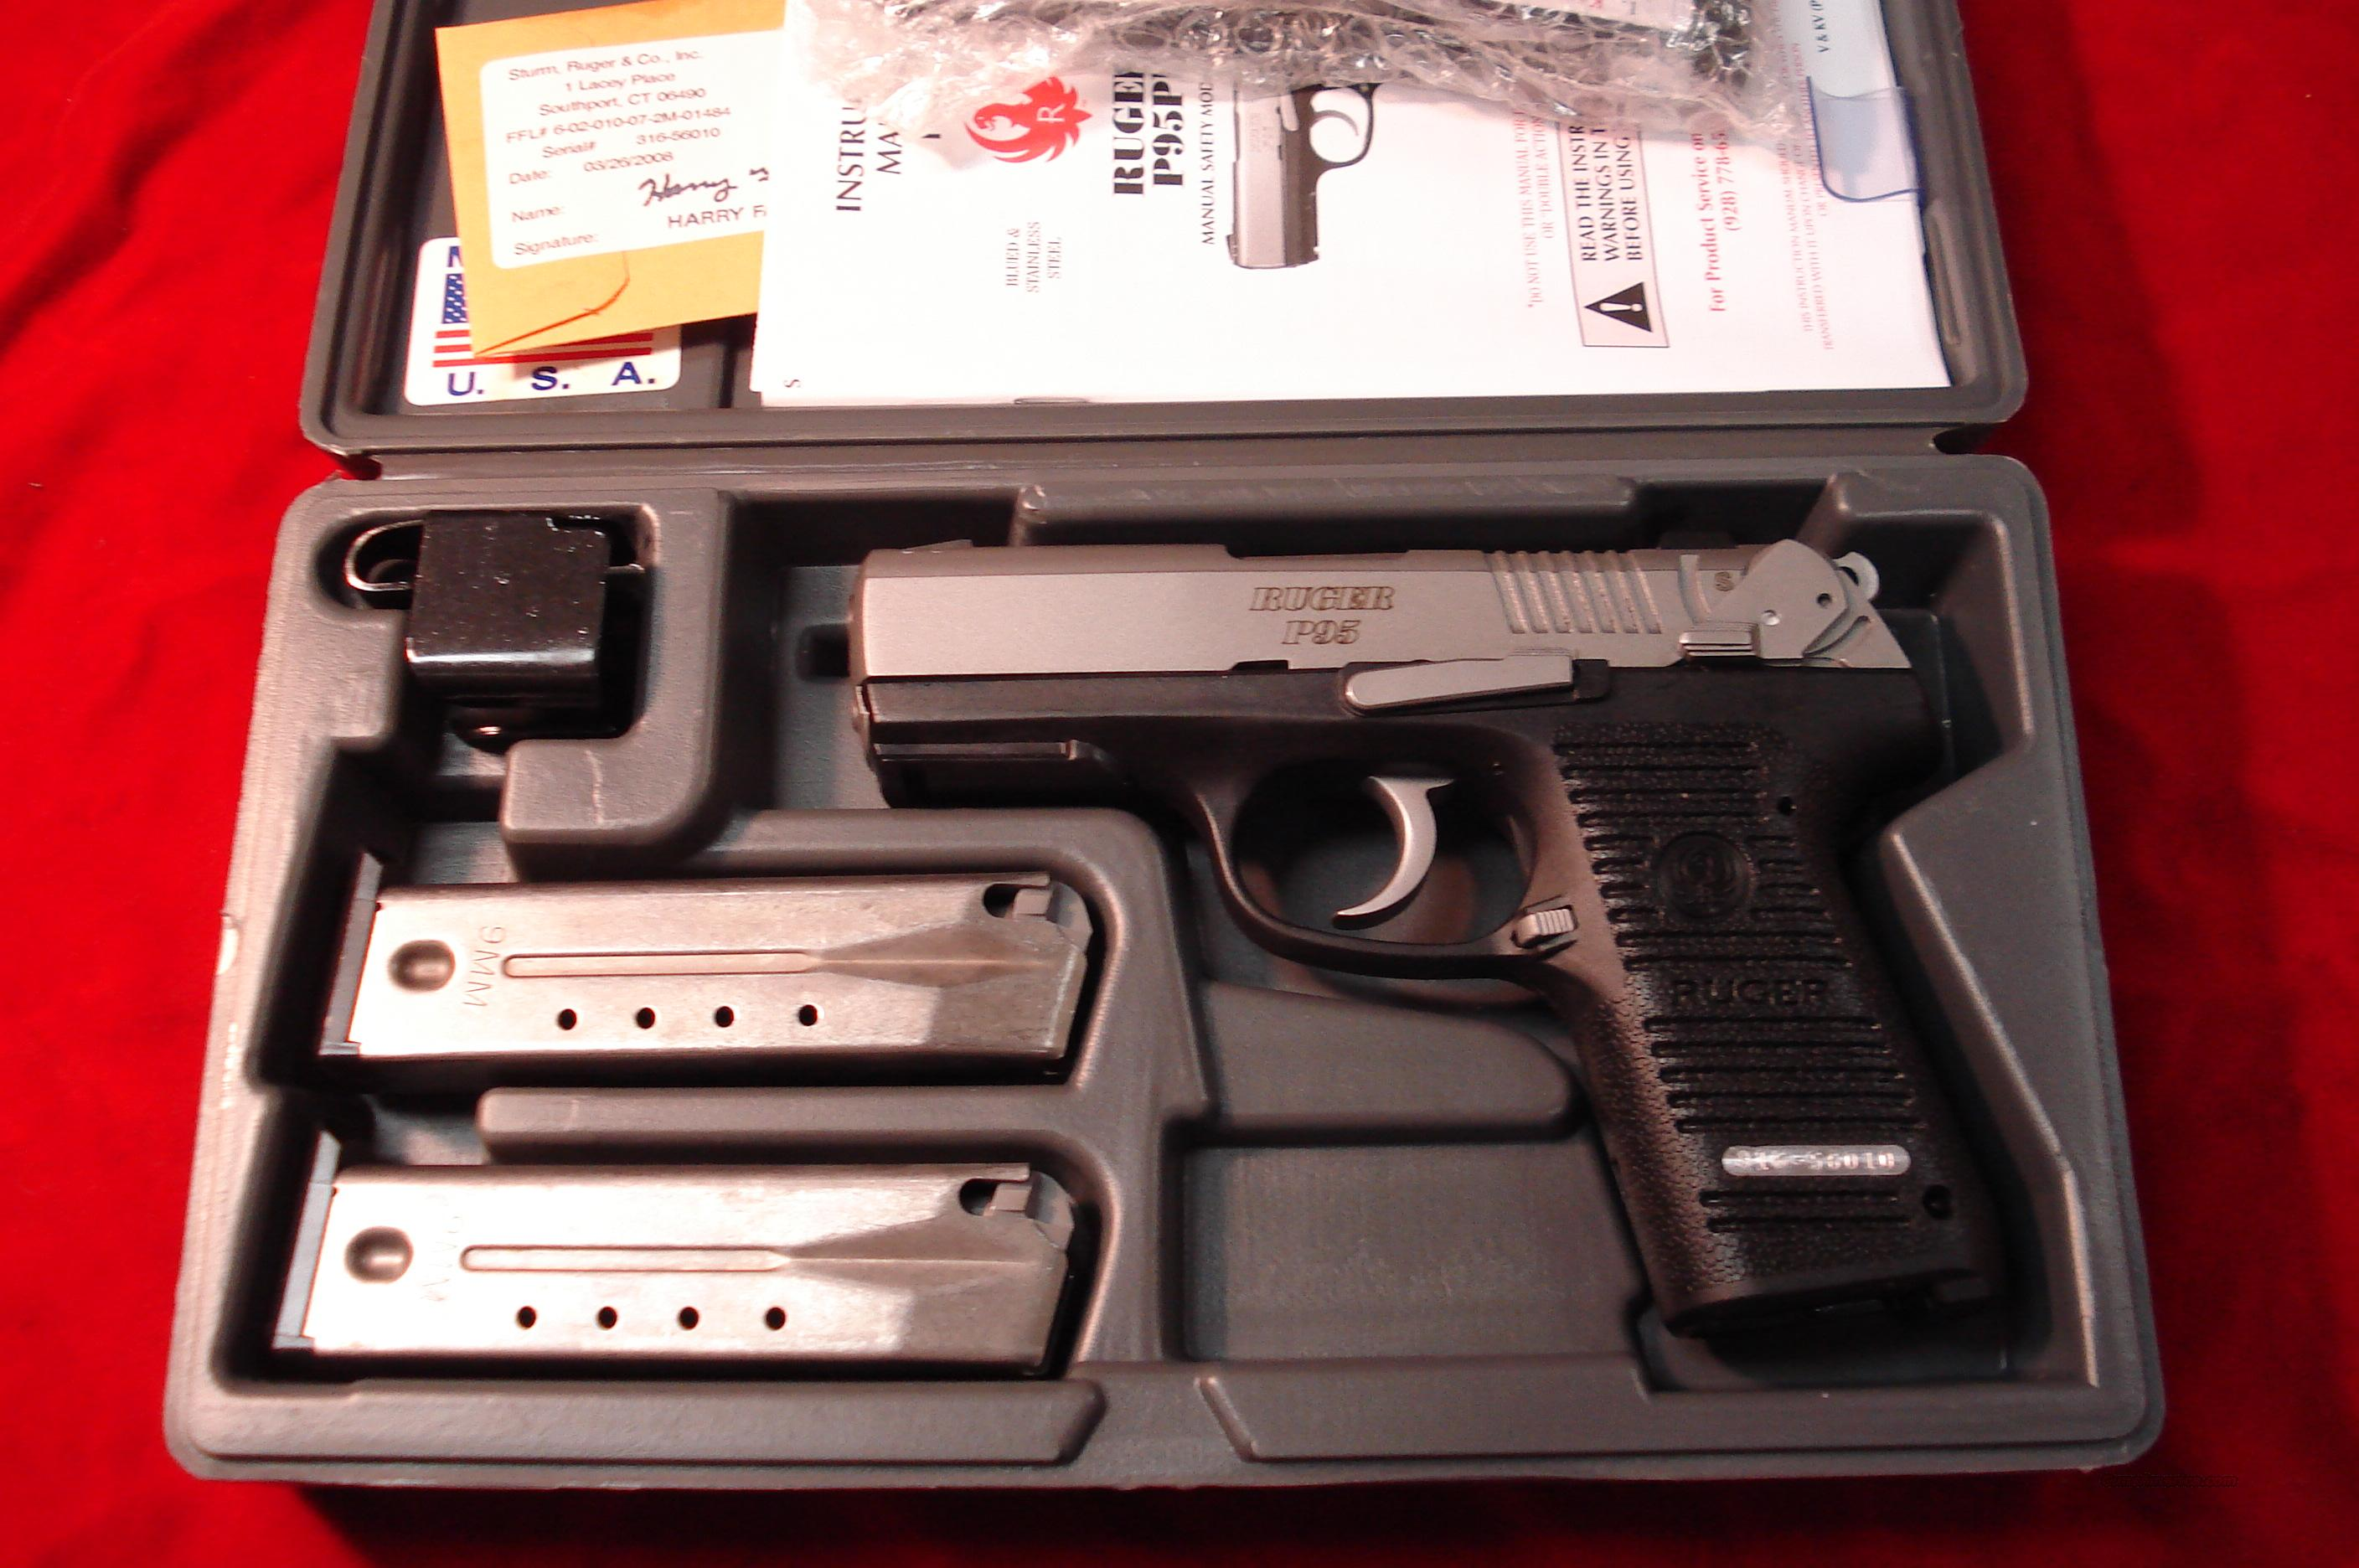 RUGER KP95 9MM STAINLESS W/RAIL NEW  Guns > Pistols > Ruger Semi-Auto Pistols > Full Frame Autos